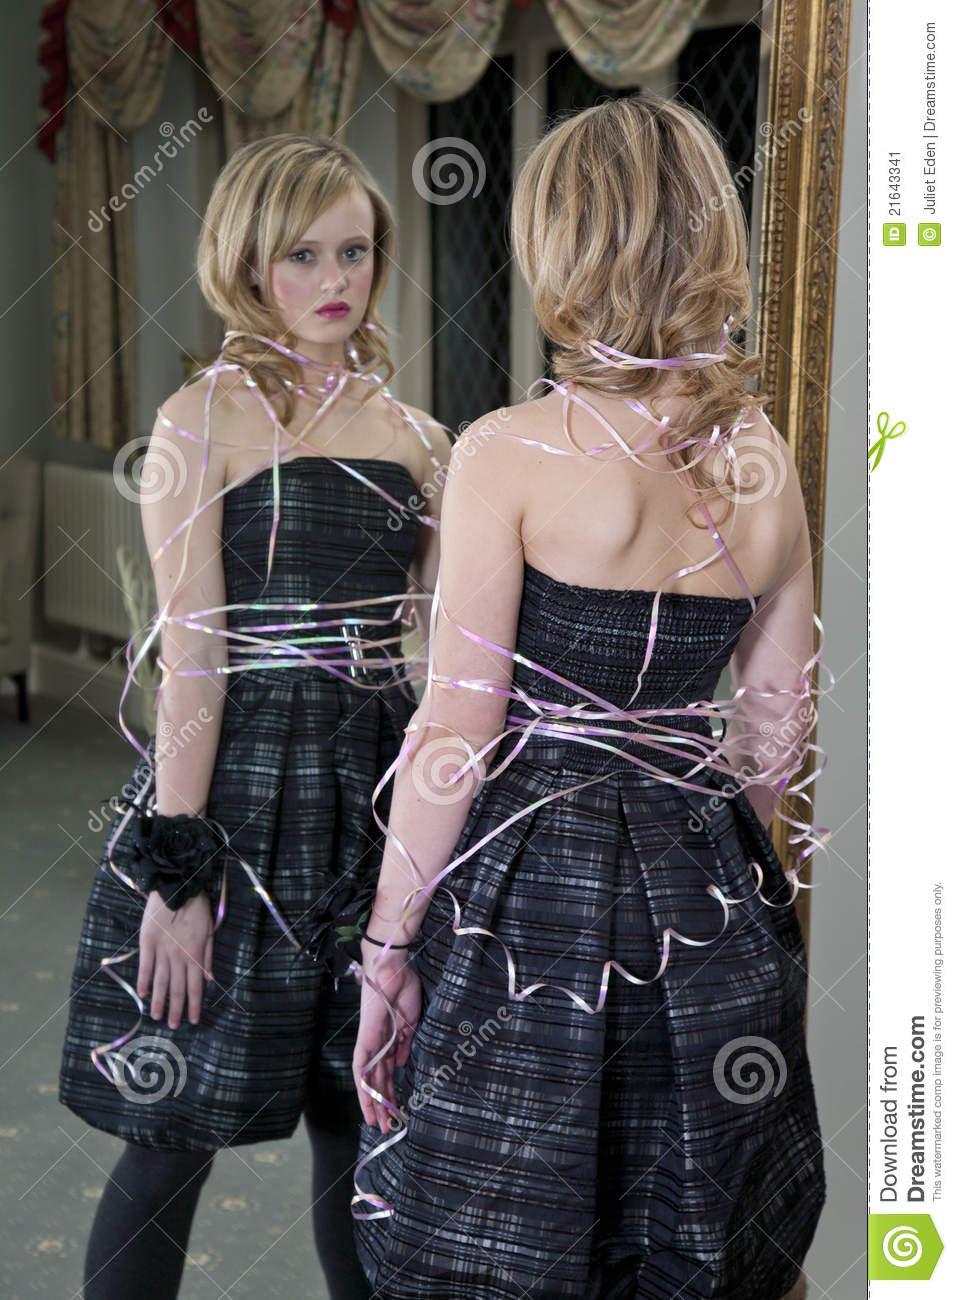 Pictures of girls tied up